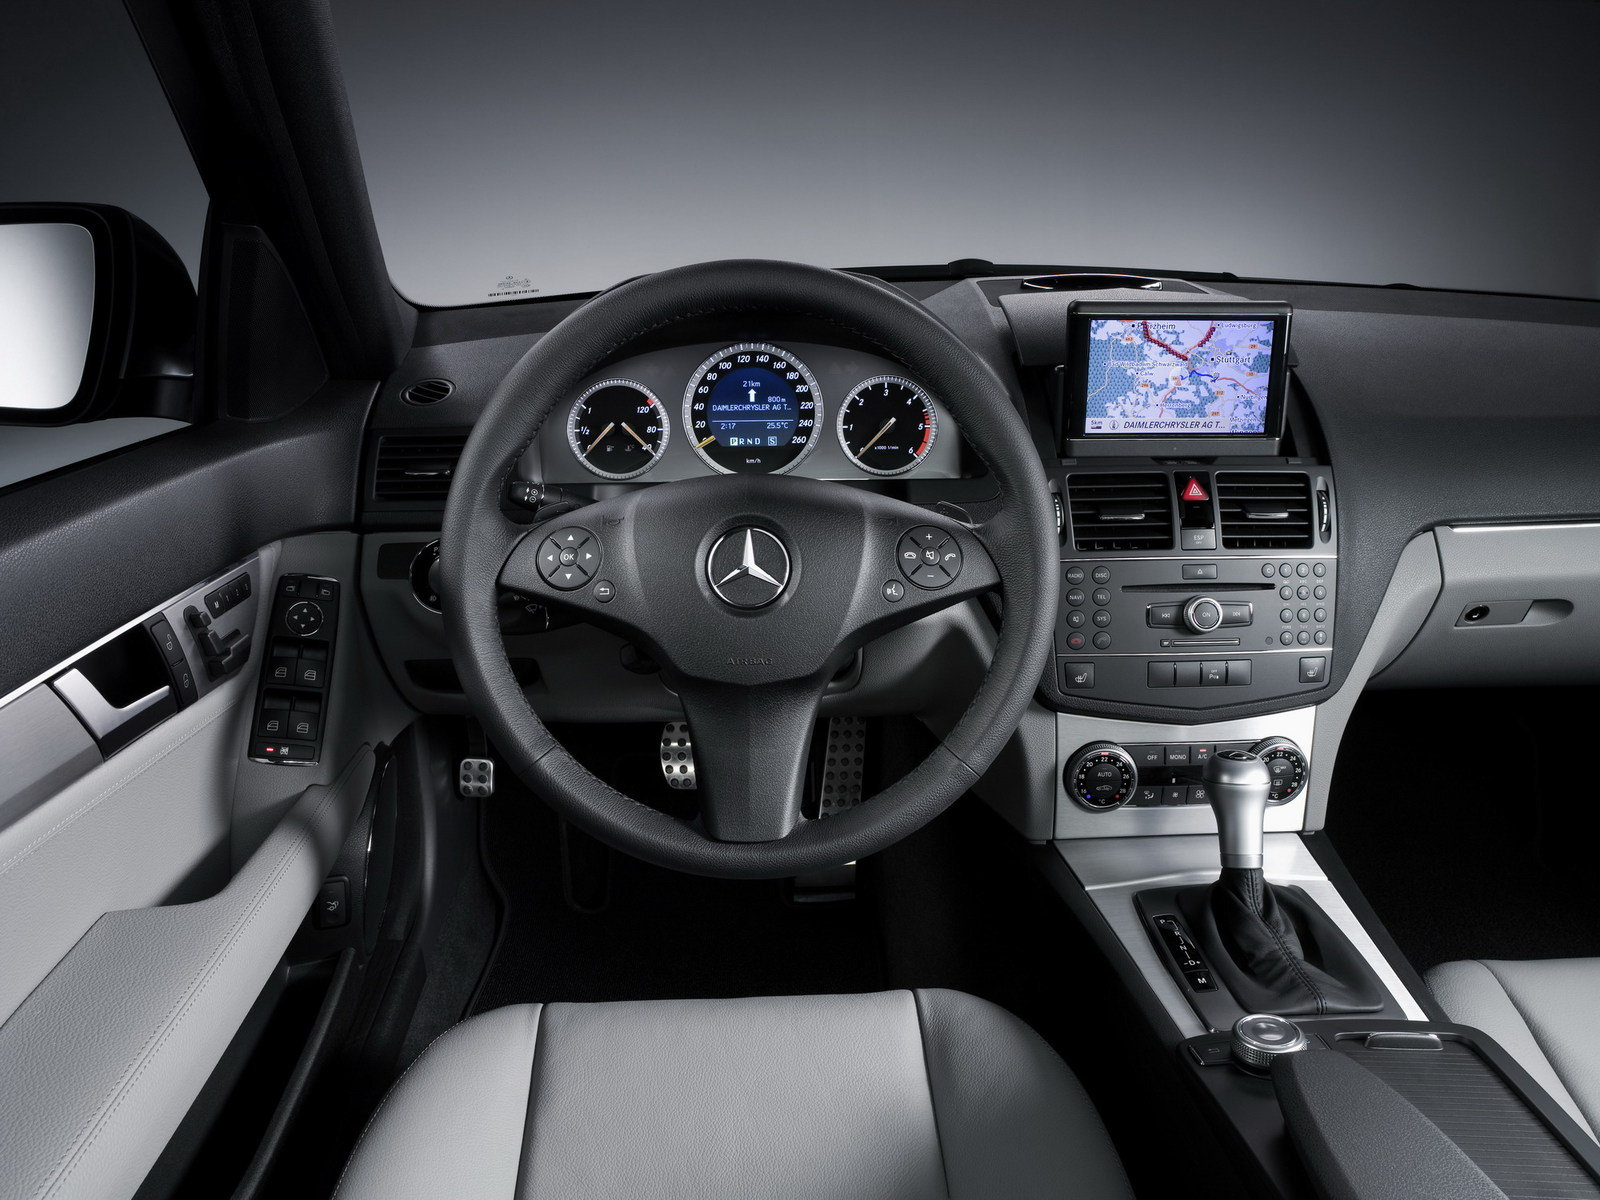 2008 mercedes c class picture 140704 car review top speed. Black Bedroom Furniture Sets. Home Design Ideas